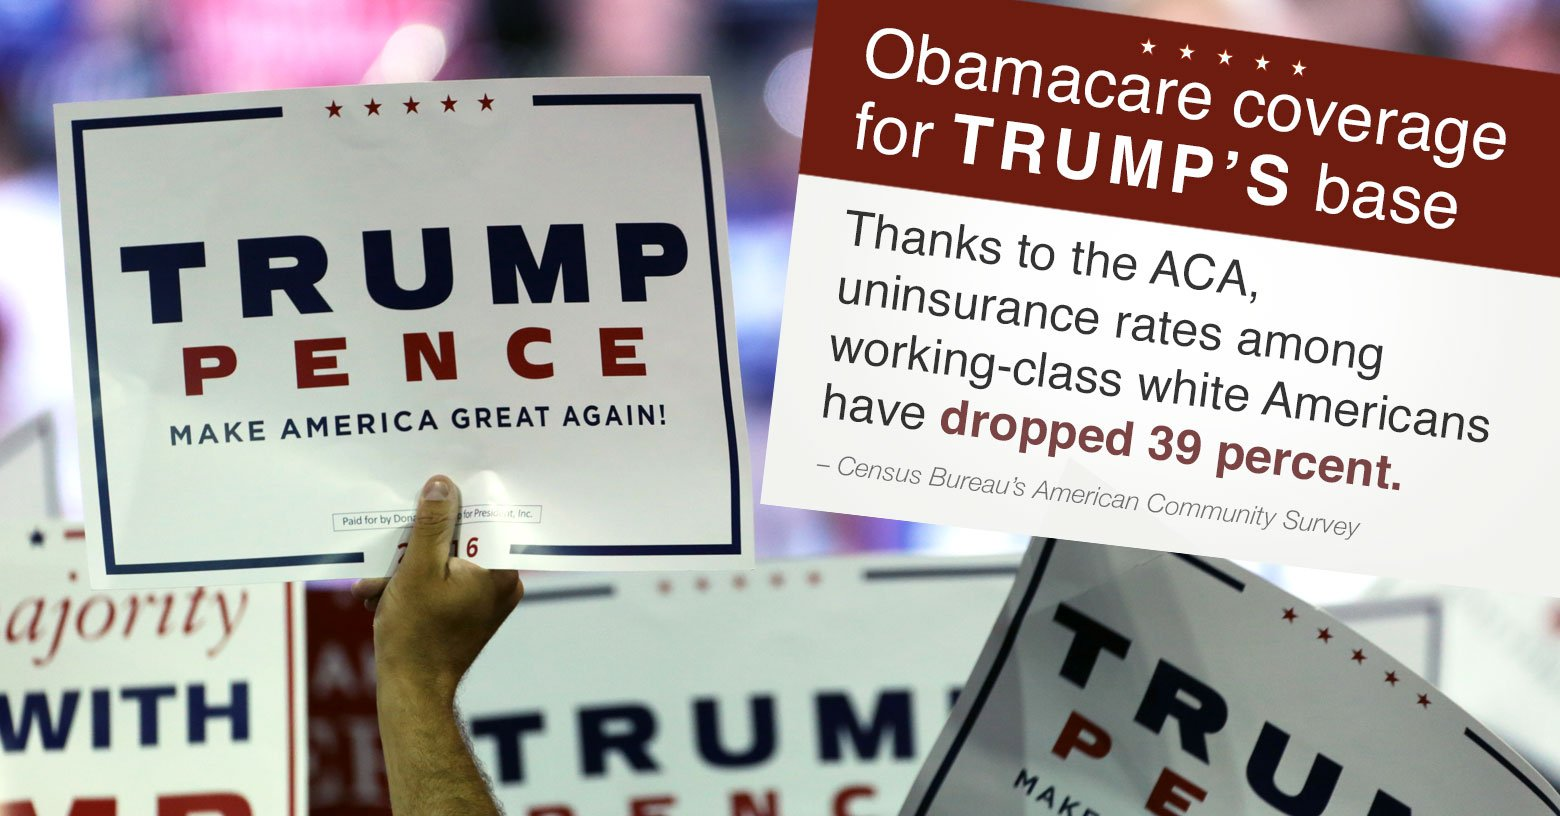 Obamacare for Trump's base photo